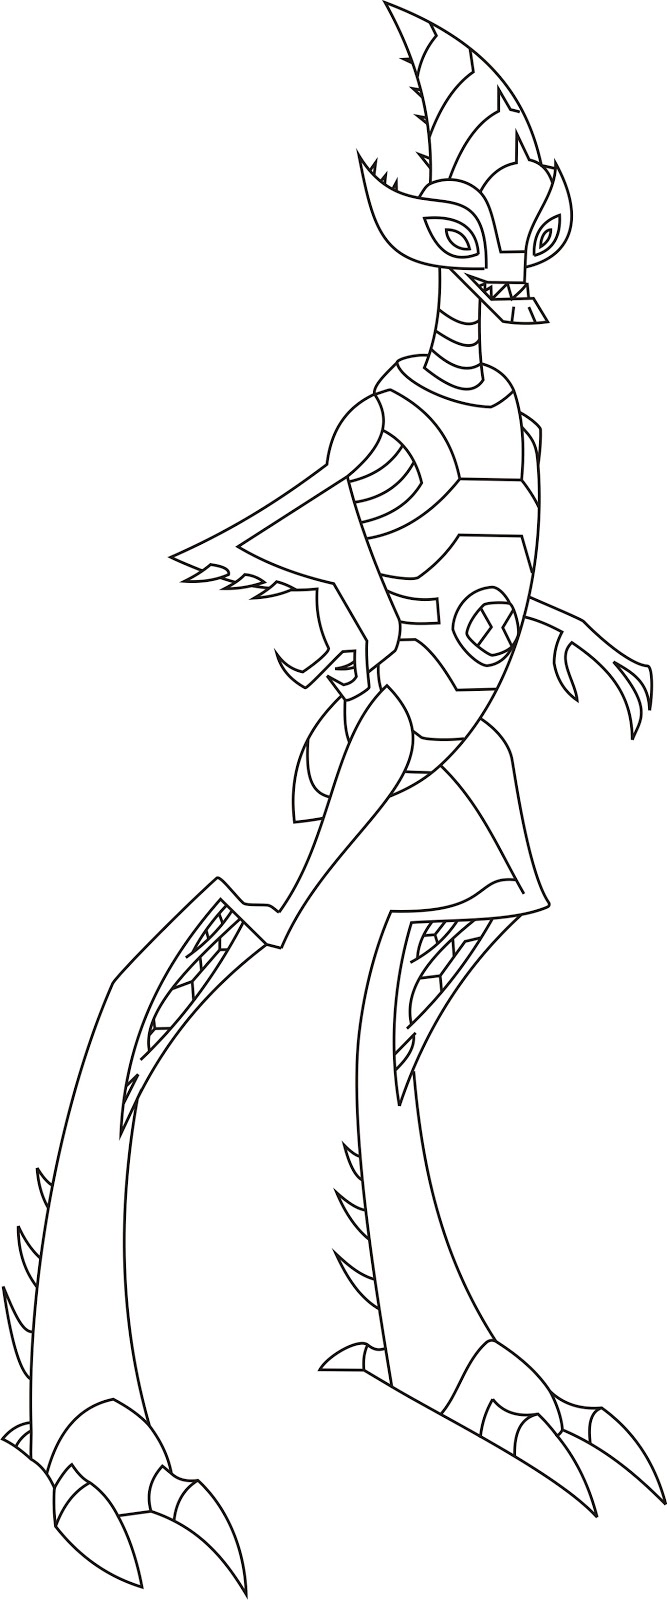 Ben 10 omniverse aliens games free coloring pages for Ben 10 coloring pages games